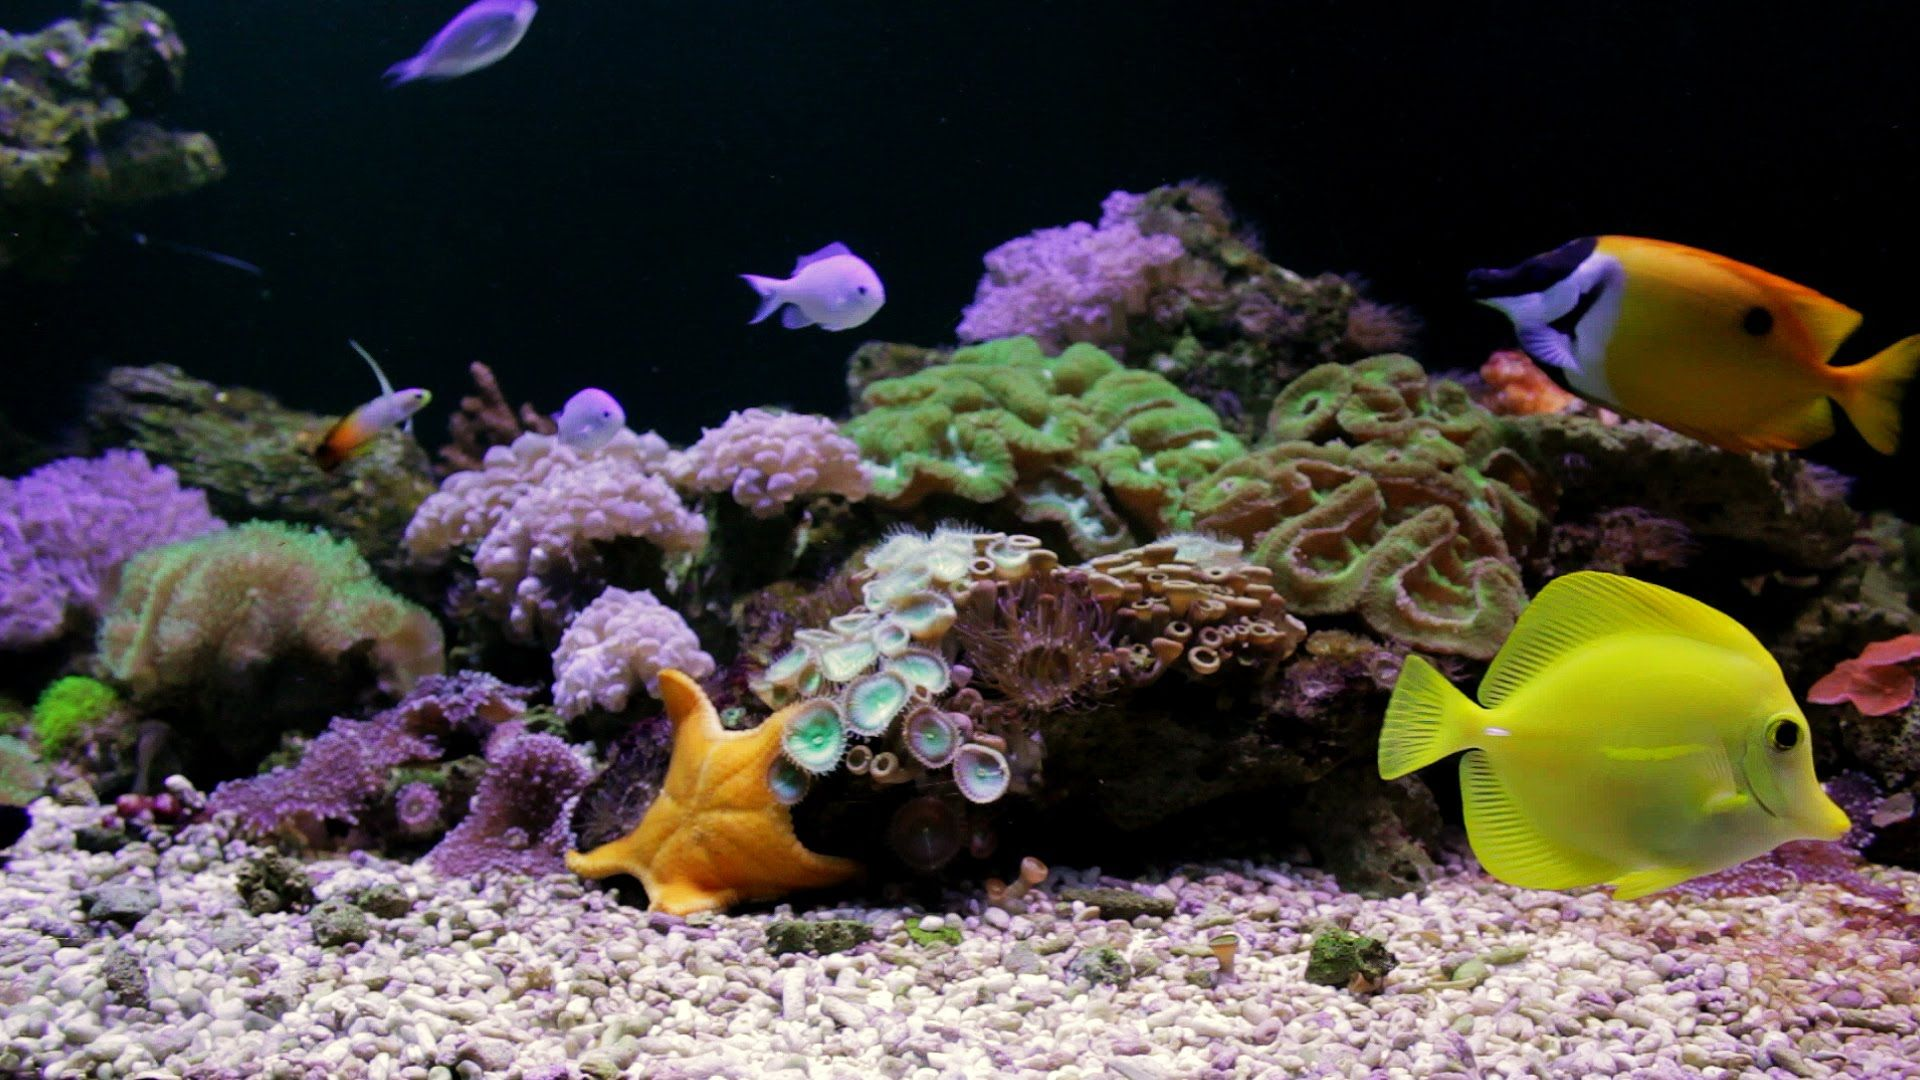 Aquarium screensaver fish tank 1080p hd - Aquarium With Starfish Coral Reef Tank Full Hd